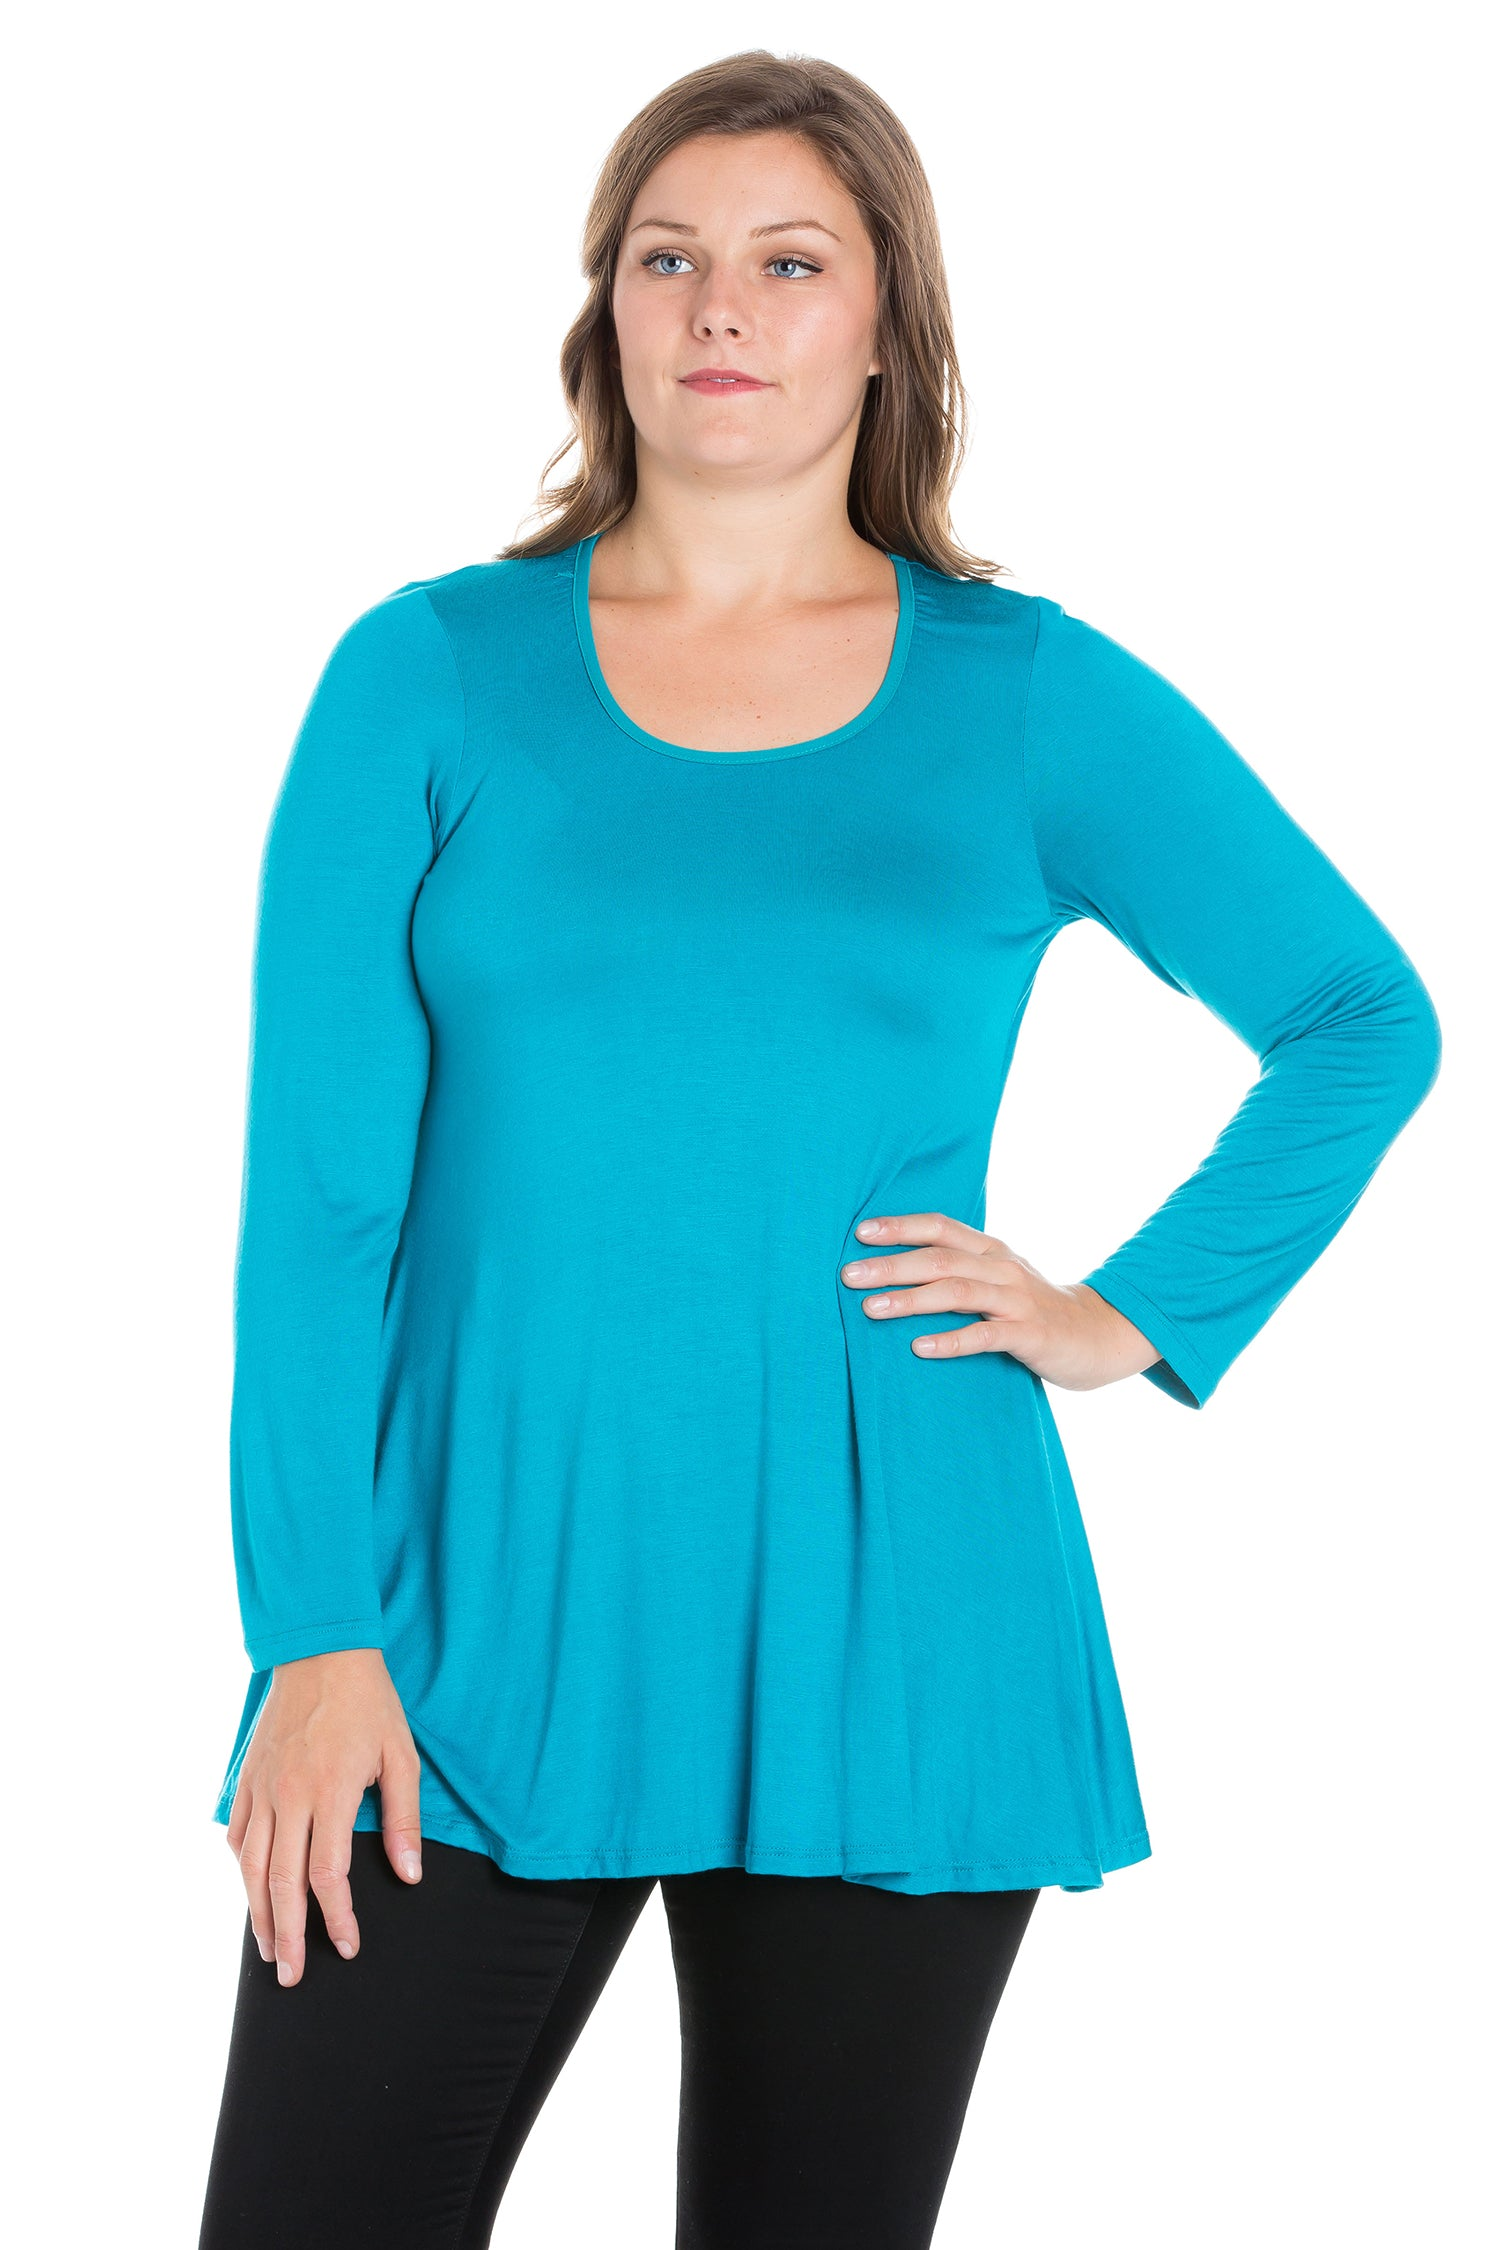 24seven Comfort Apparel Long Sleeve Swing Plus Size Tunic Top-TOPS-24Seven Comfort Apparel-JADE-1X-24/7 Comfort Apparel